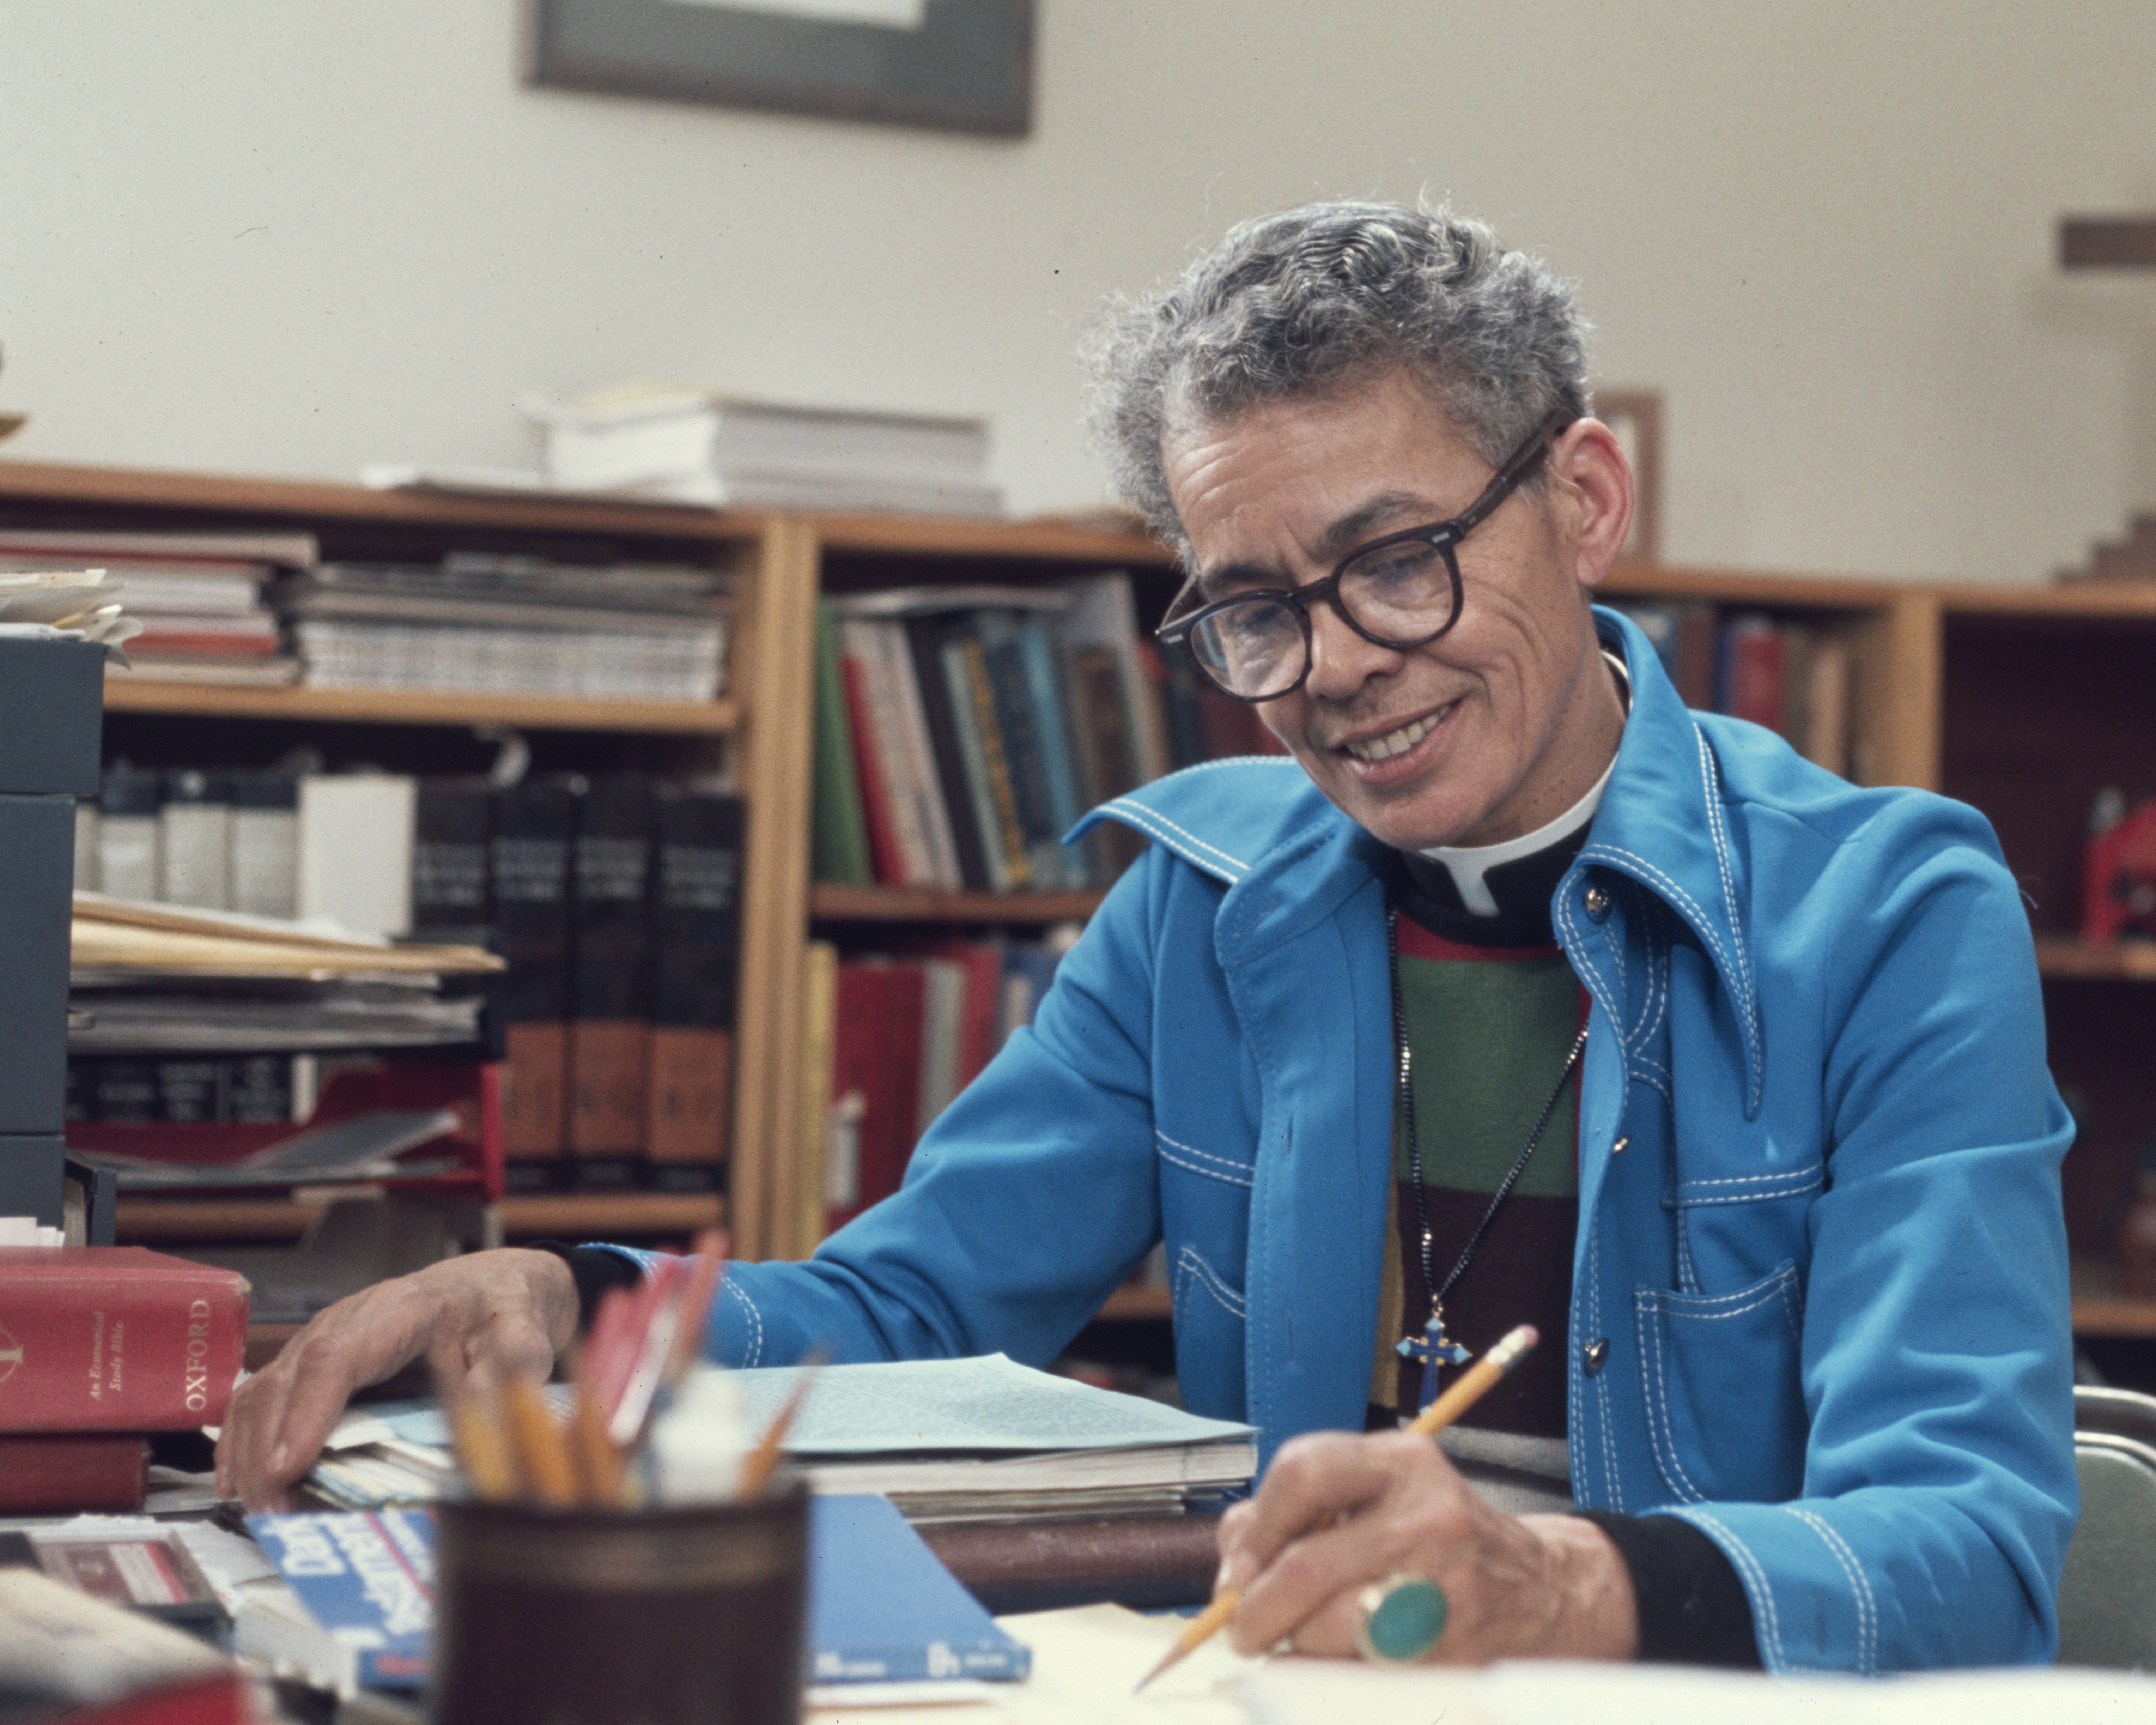 Head and shoulders shot of Pauli Murray working at a desk